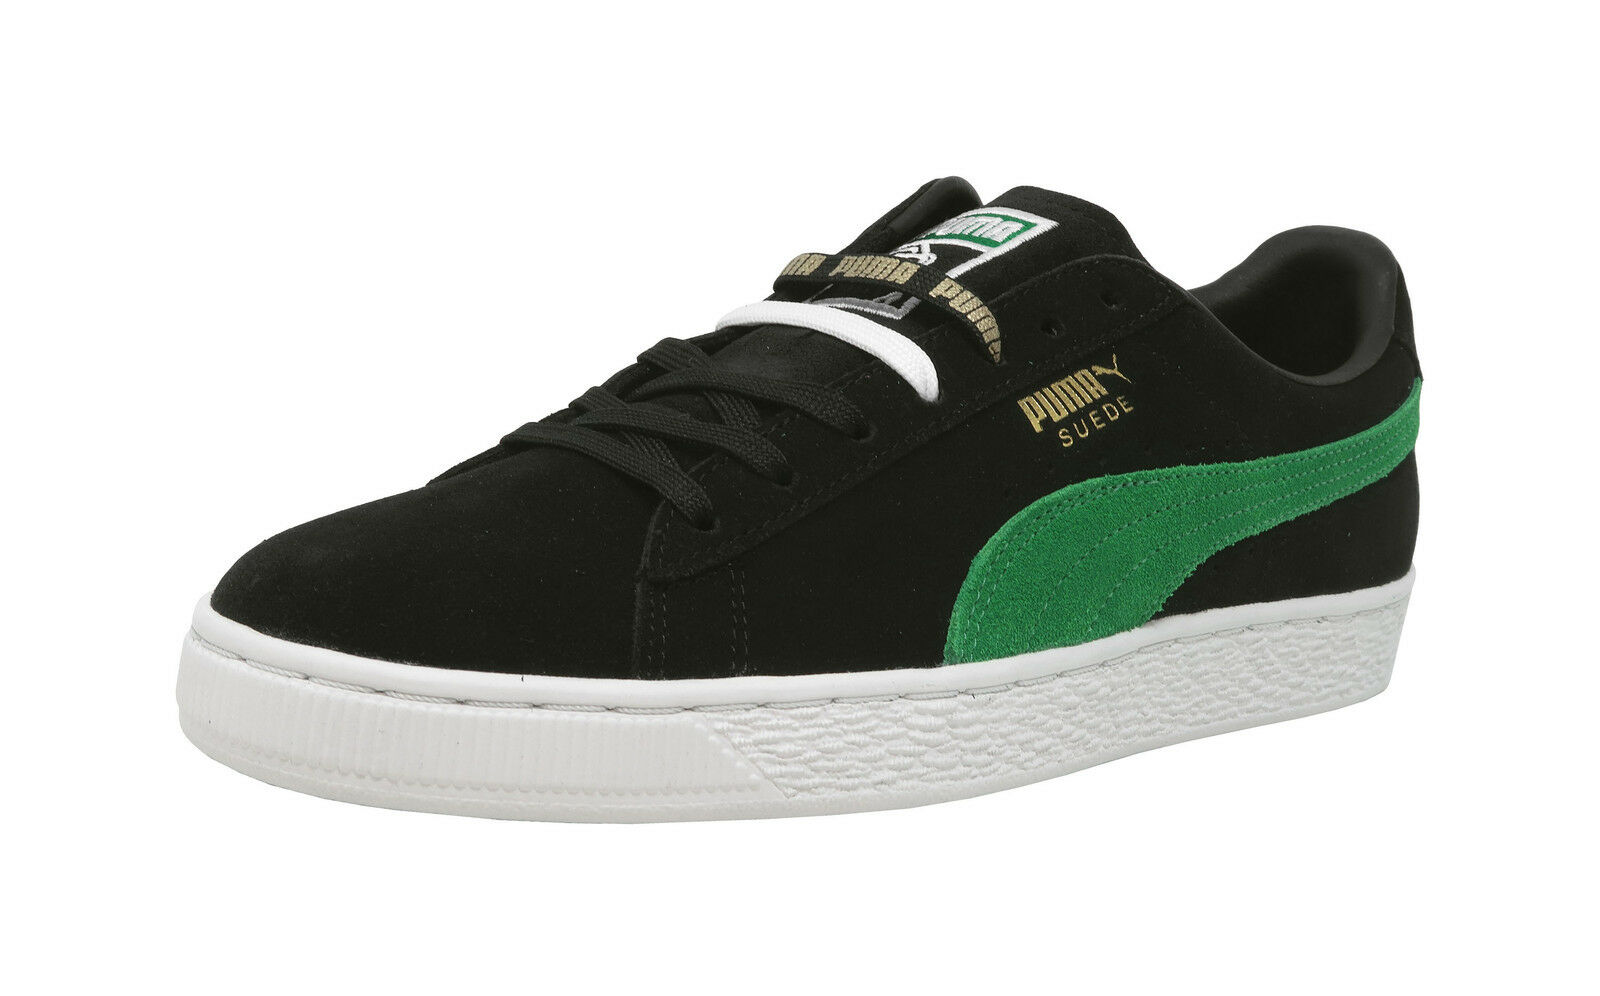 PUMA 50 Suede Classic X XLarge Black Green White Lace Up Sneakers Men shoes